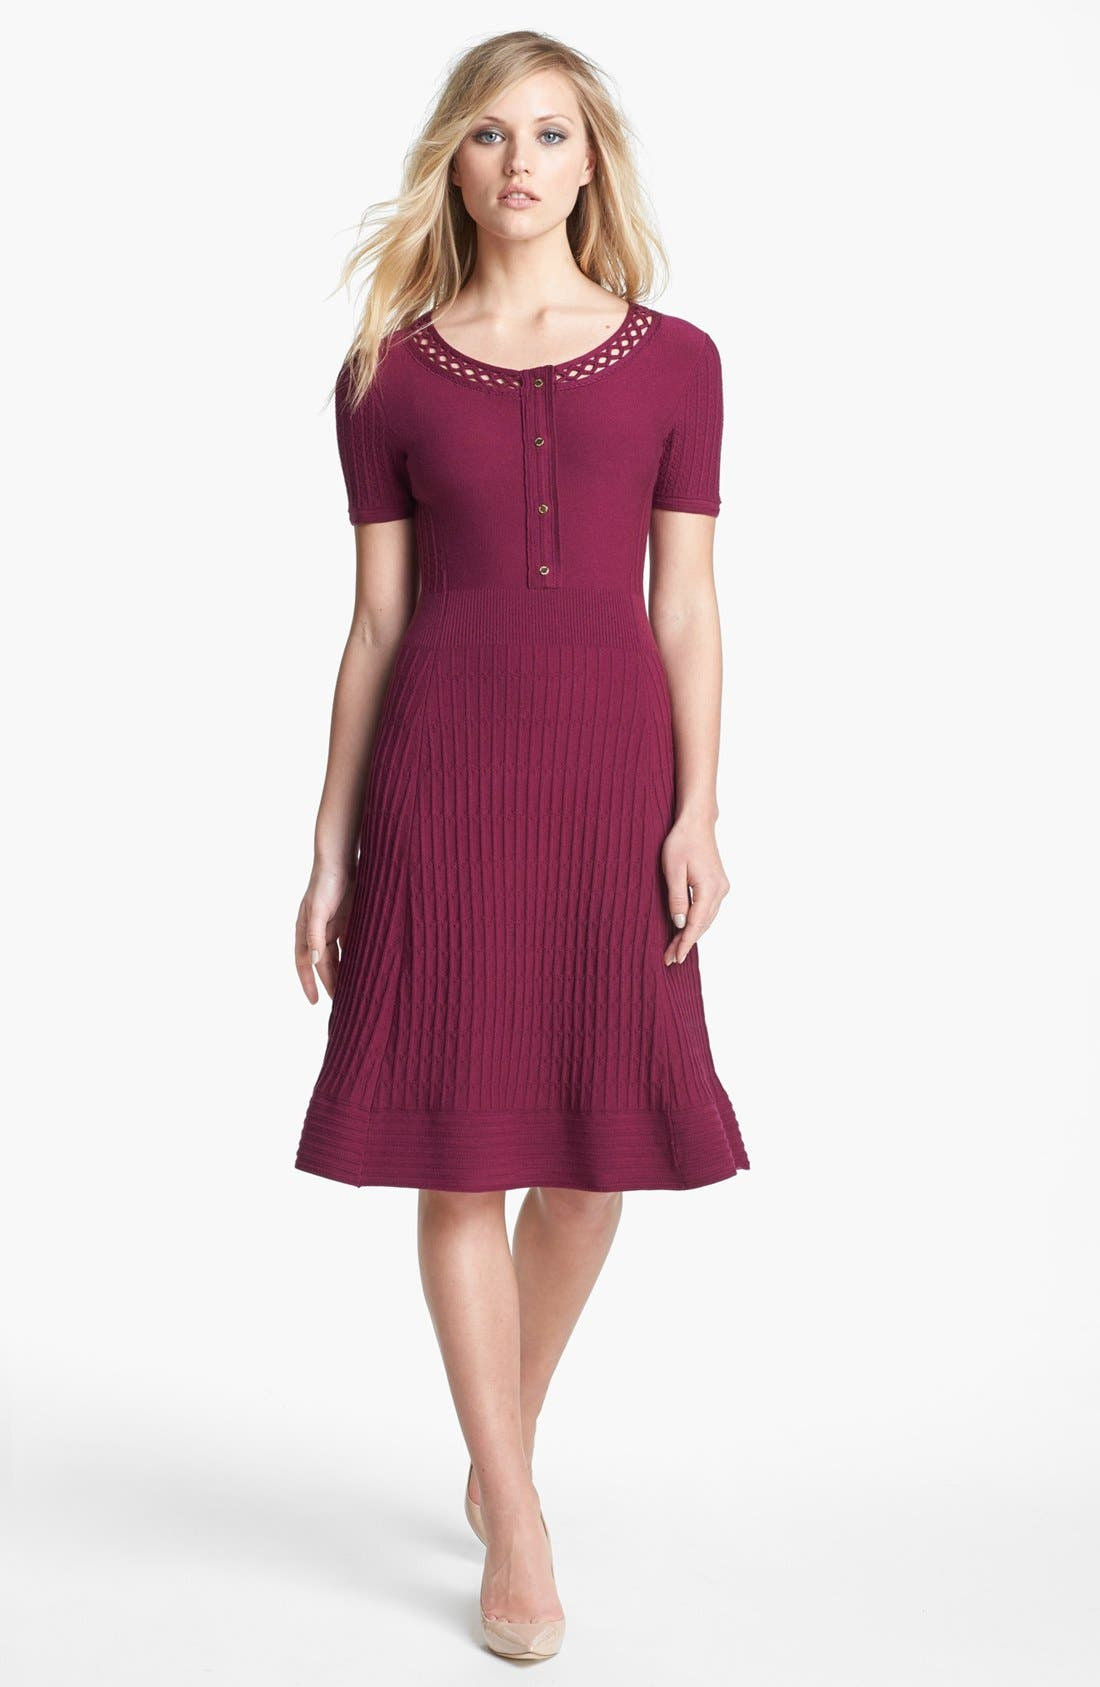 Main Image - Tory Burch 'Ashlyn' Merino Wool Blend Sweater Dress